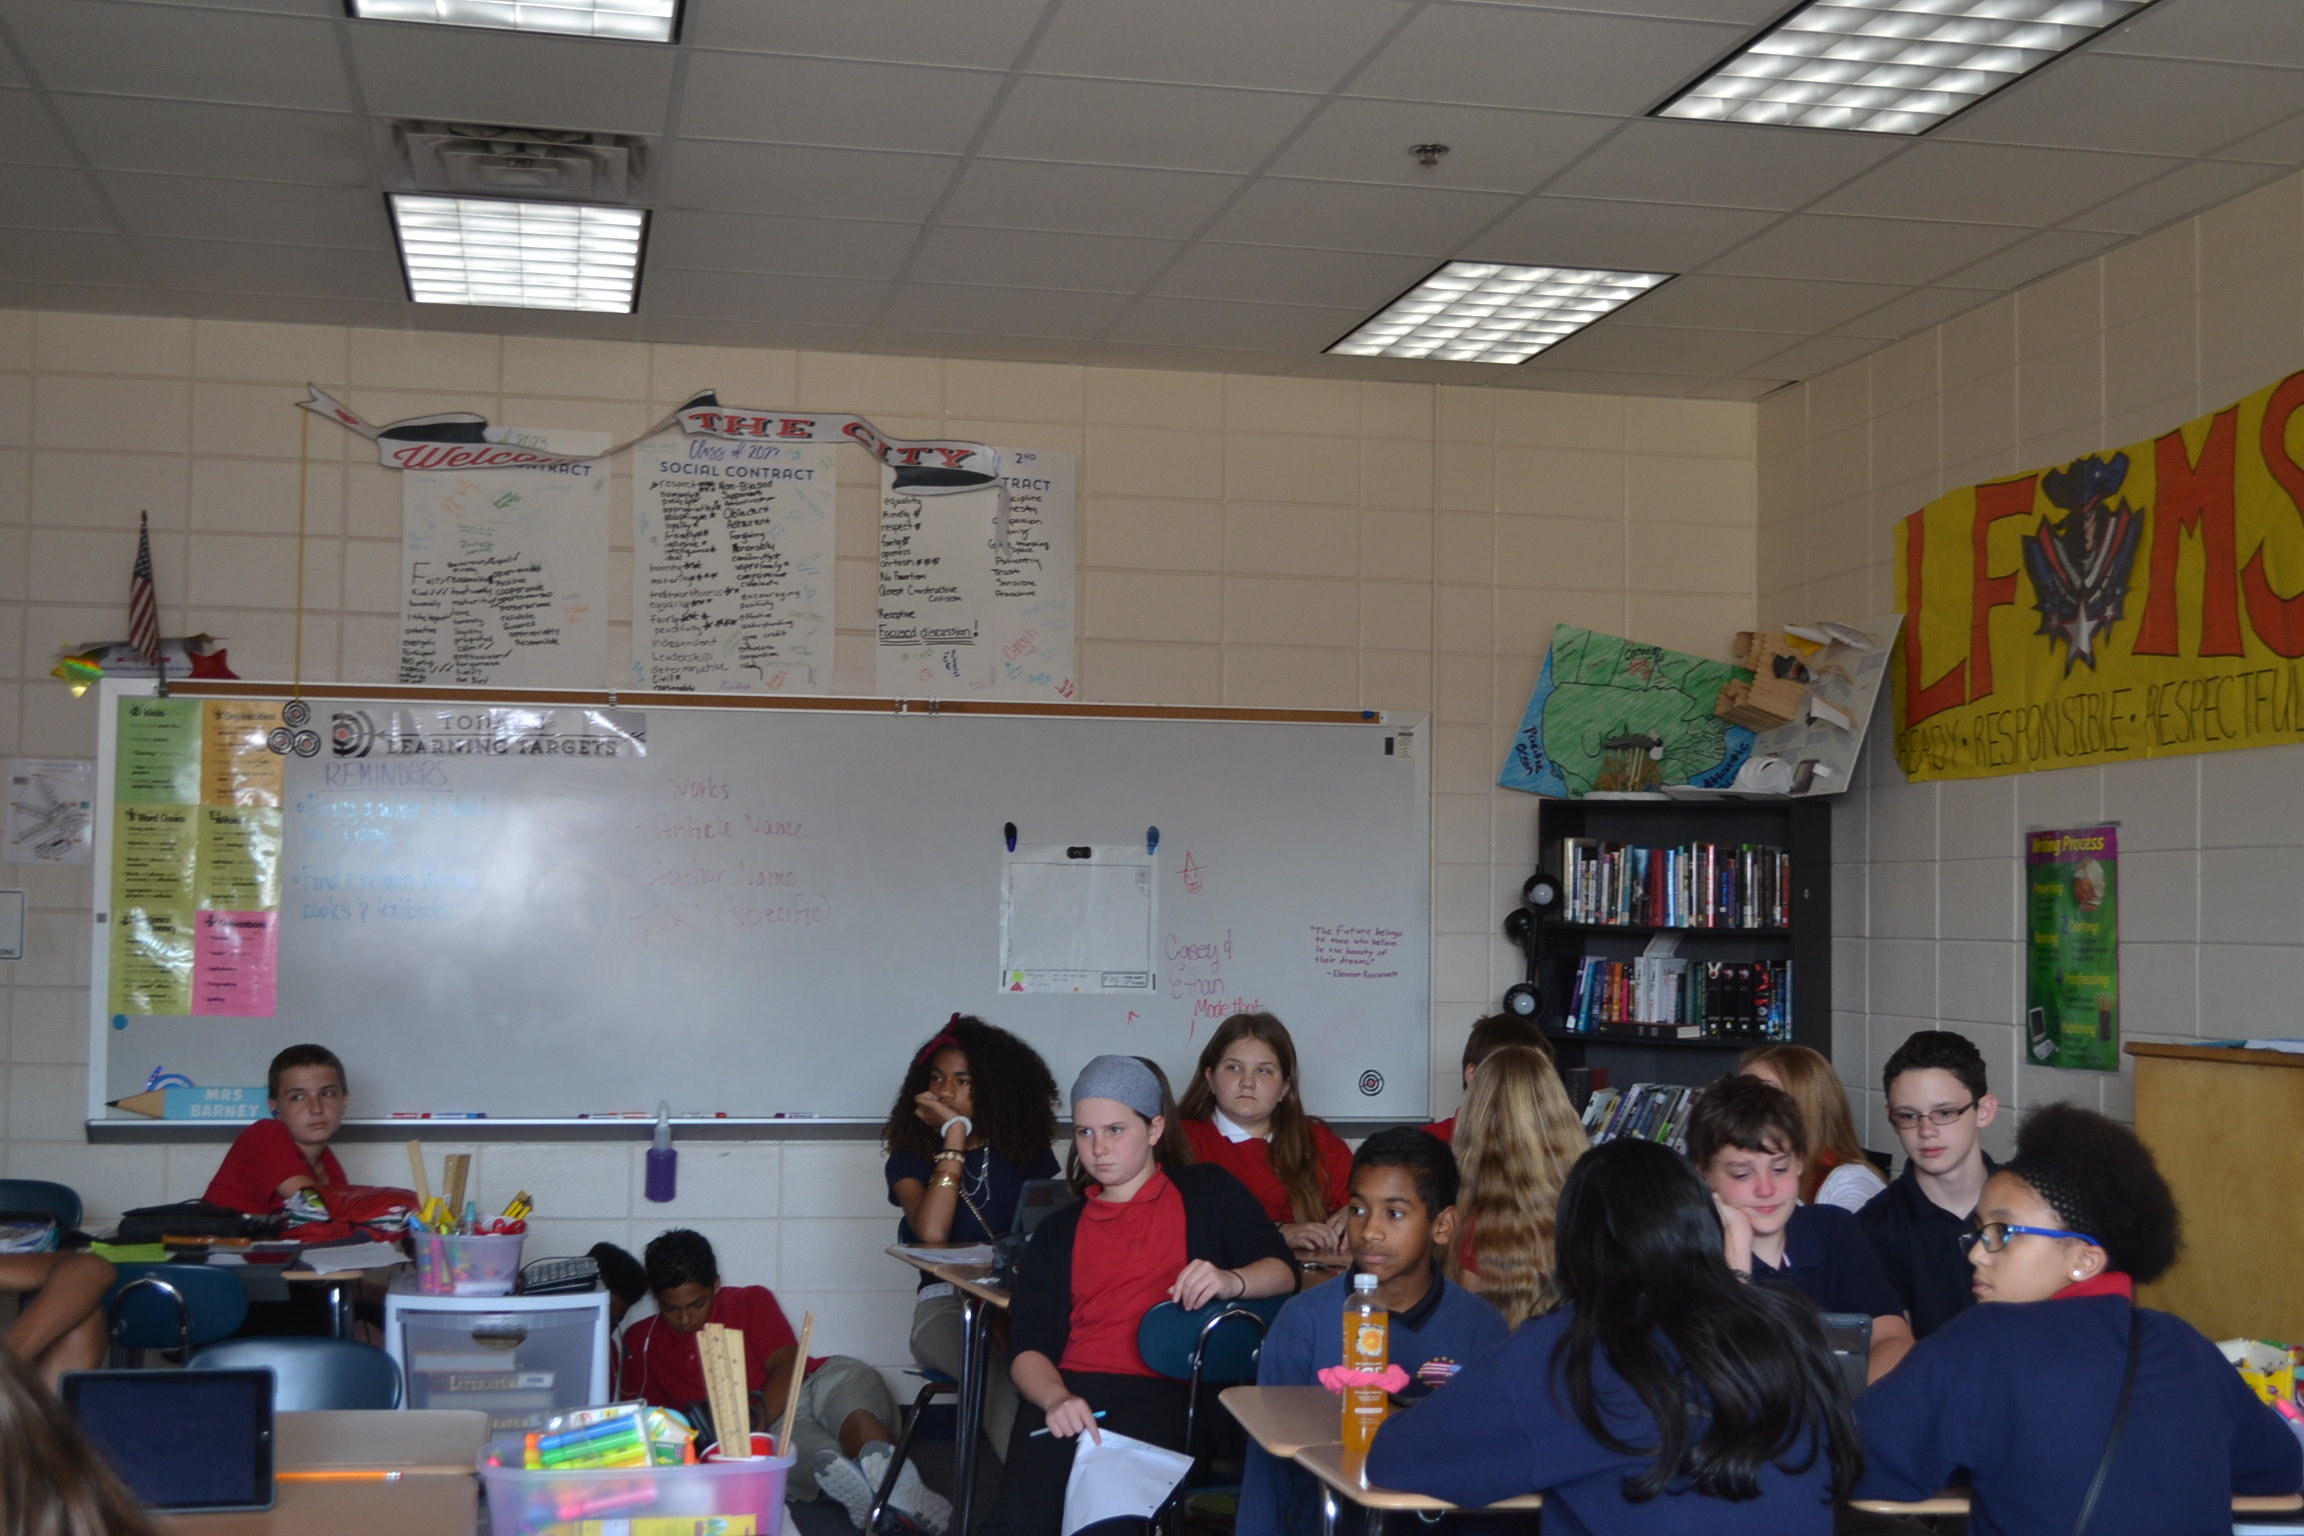 Limited space in the classroom permits flexibility and group/individual collaboration